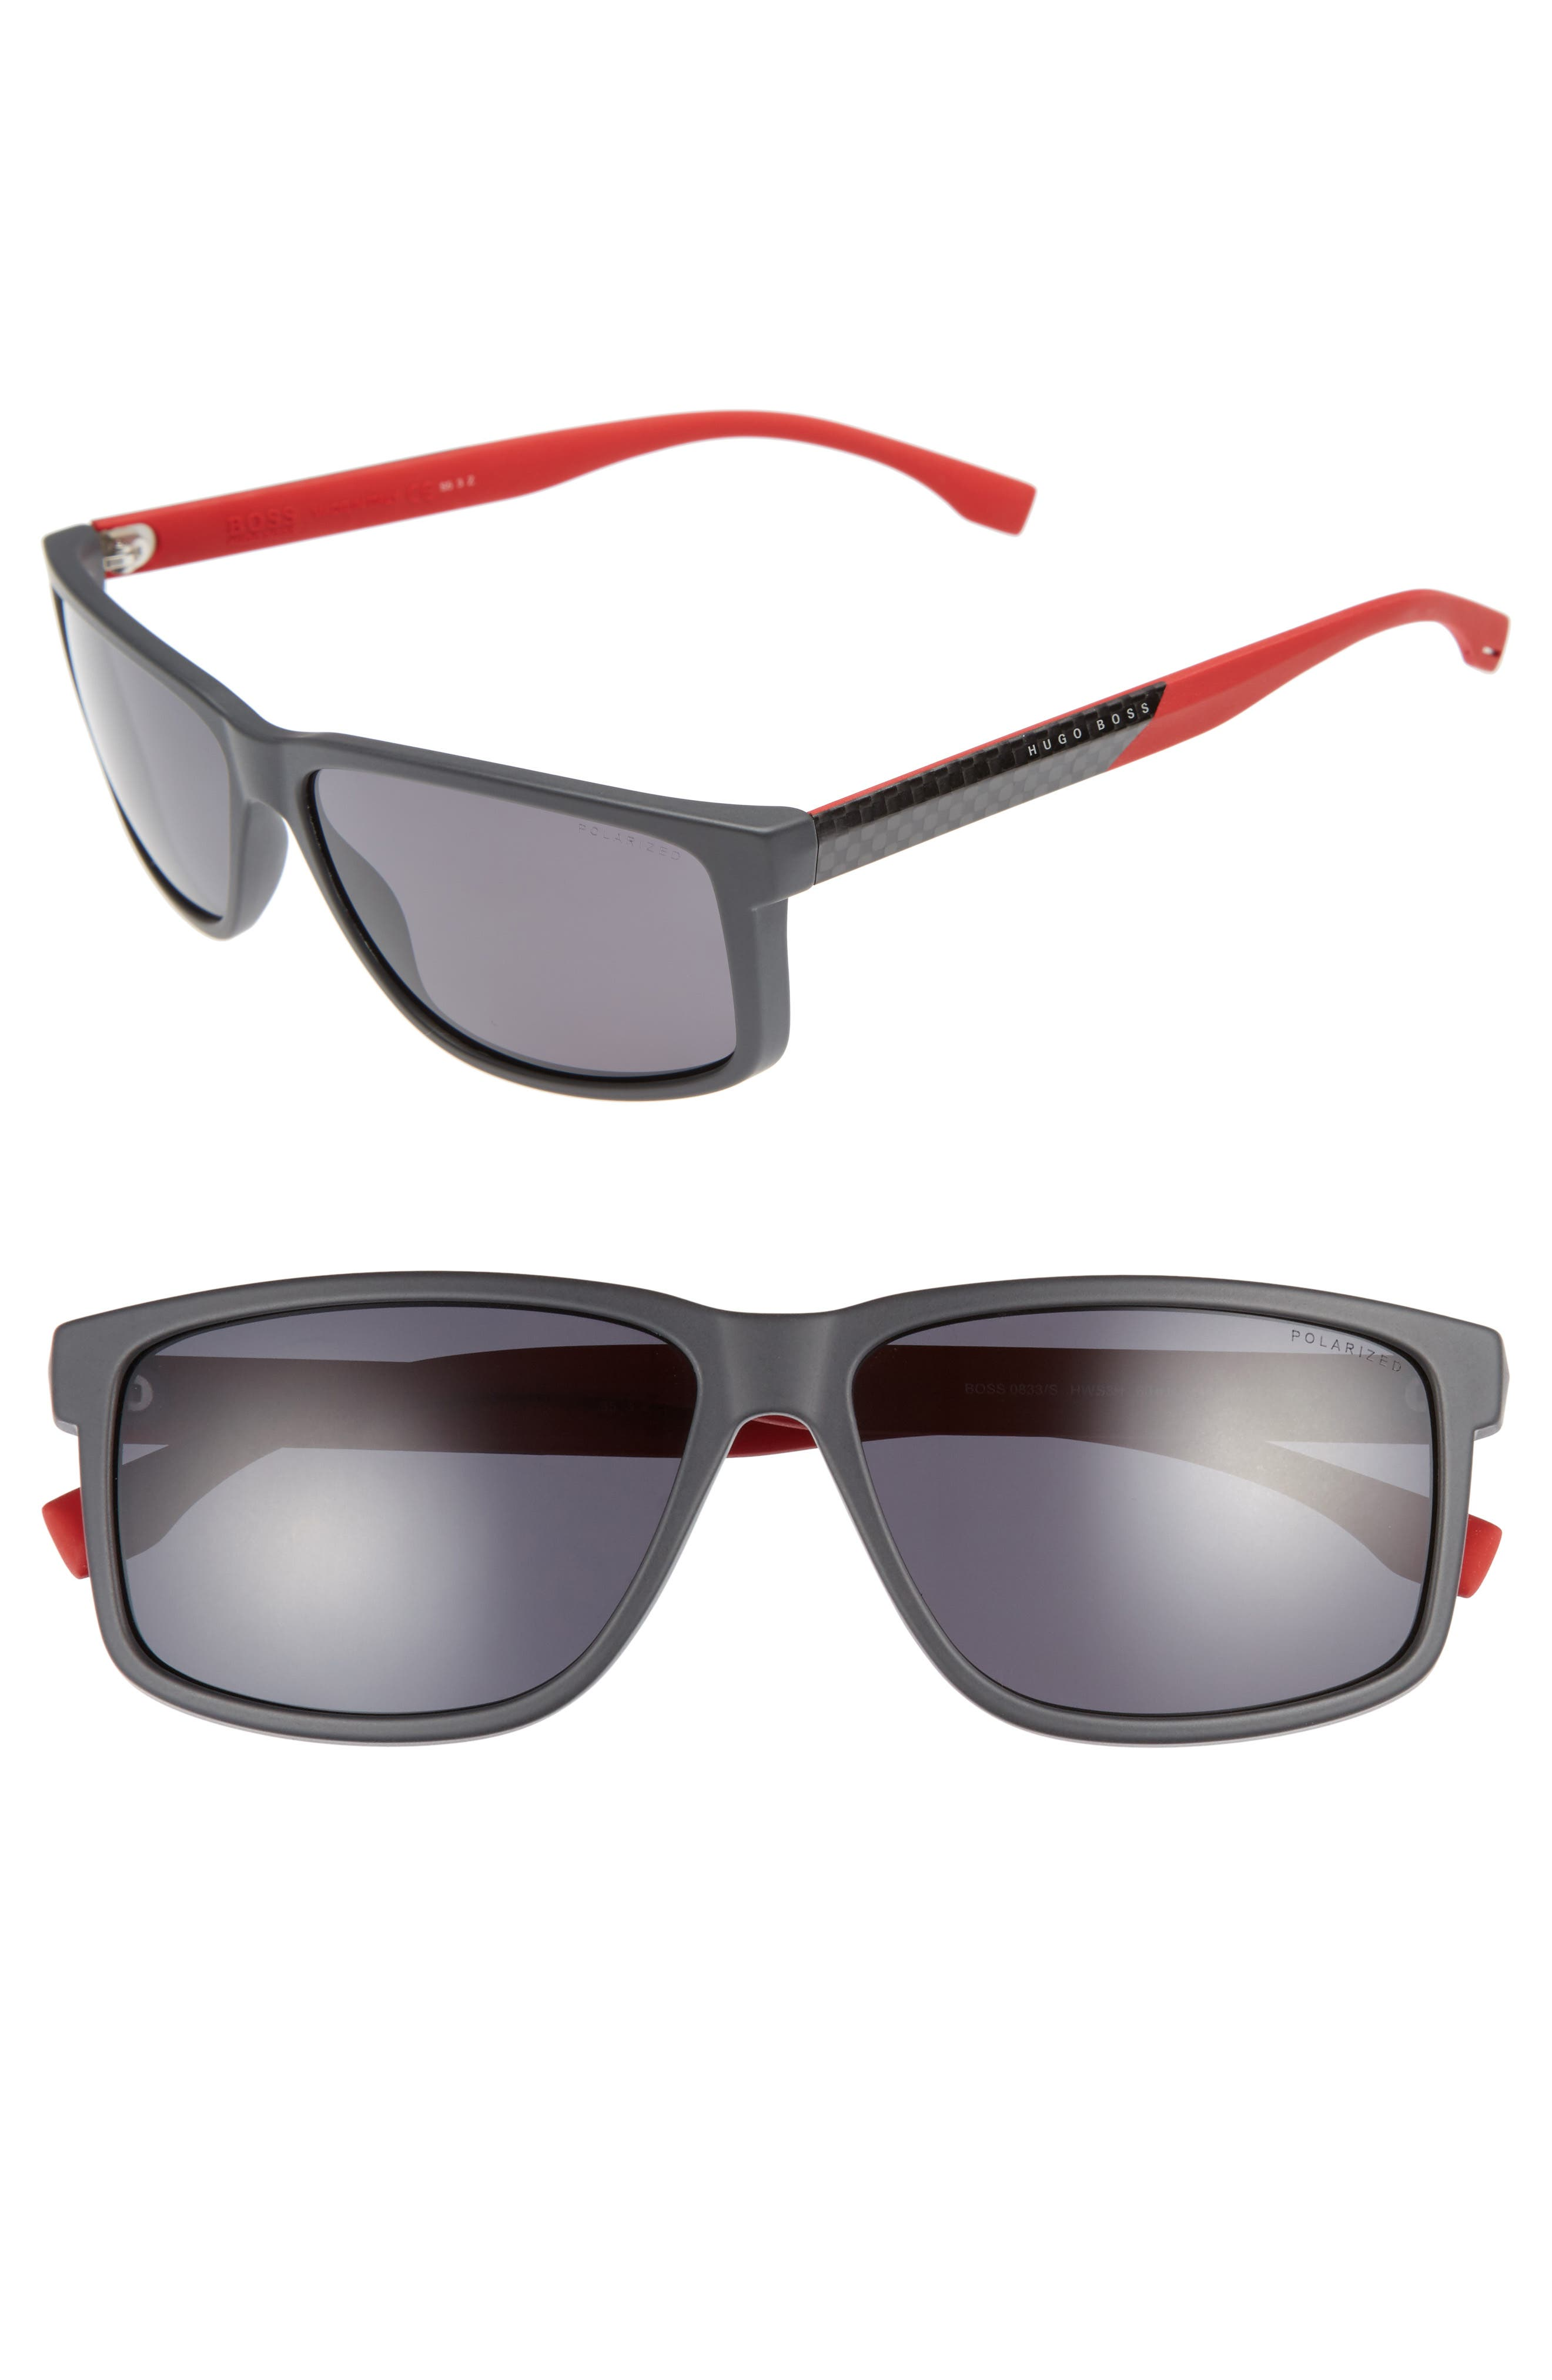 60mm Polarized Sunglasses,                             Main thumbnail 1, color,                             Grey Carbon Red